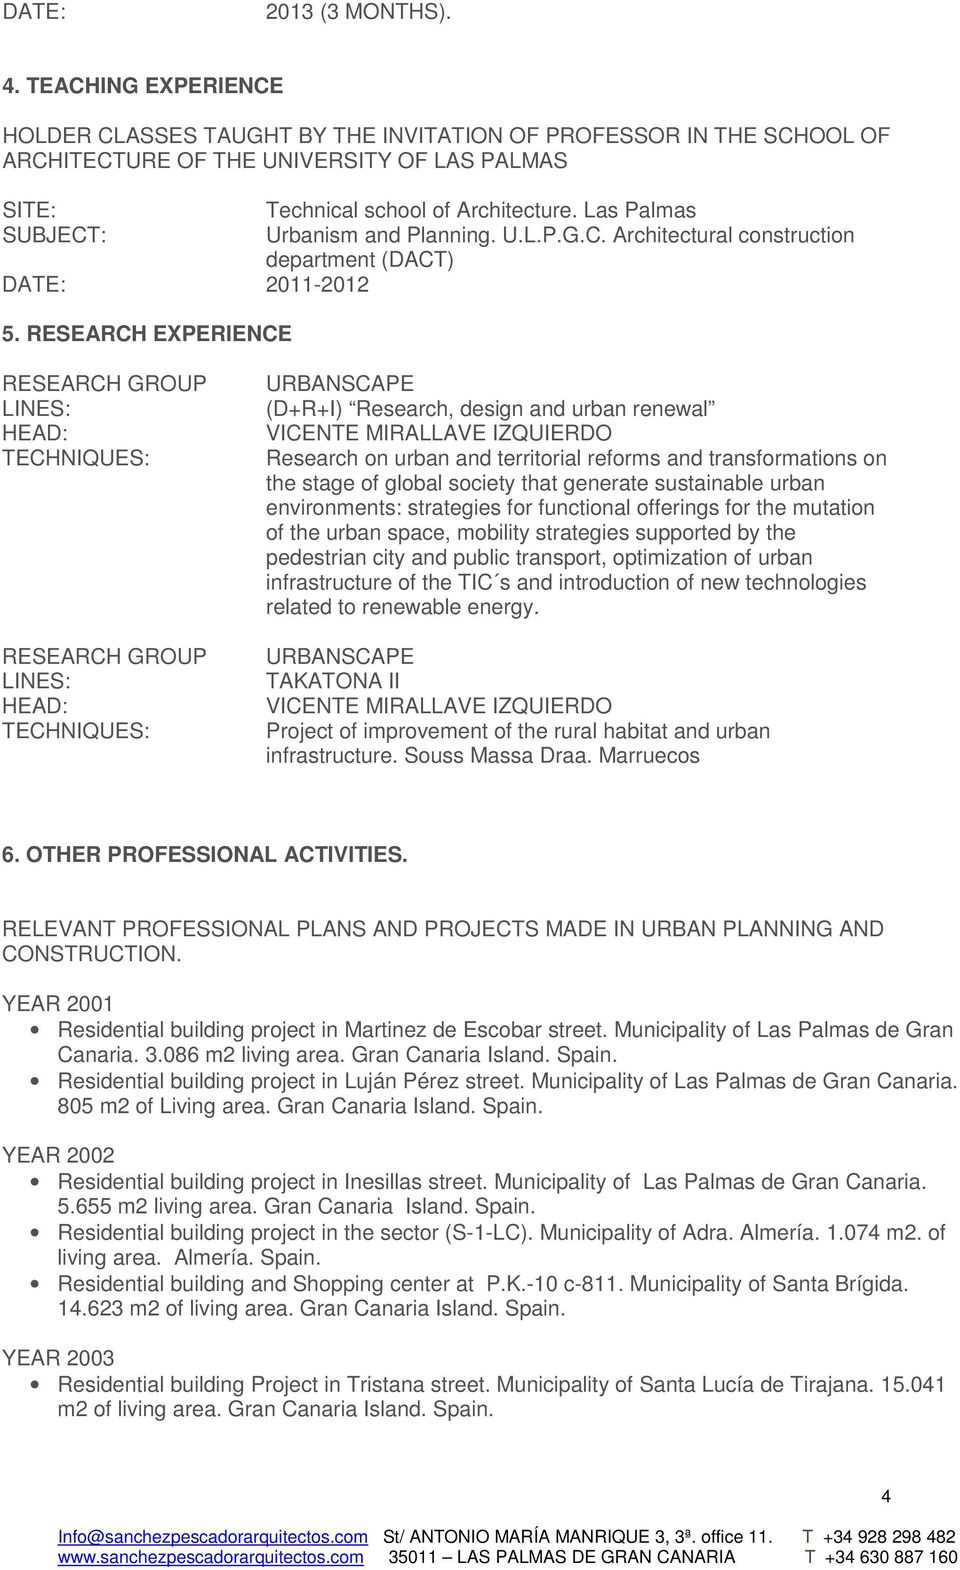 RESEARCH EXPERIENCE RESEARCH GROUP LINES: HEAD: TECHNIQUES: RESEARCH GROUP LINES: HEAD: TECHNIQUES: URBANSCAPE (D+R+I) Research, design and urban renewal VICENTE MIRALLAVE IZQUIERDO Research on urban